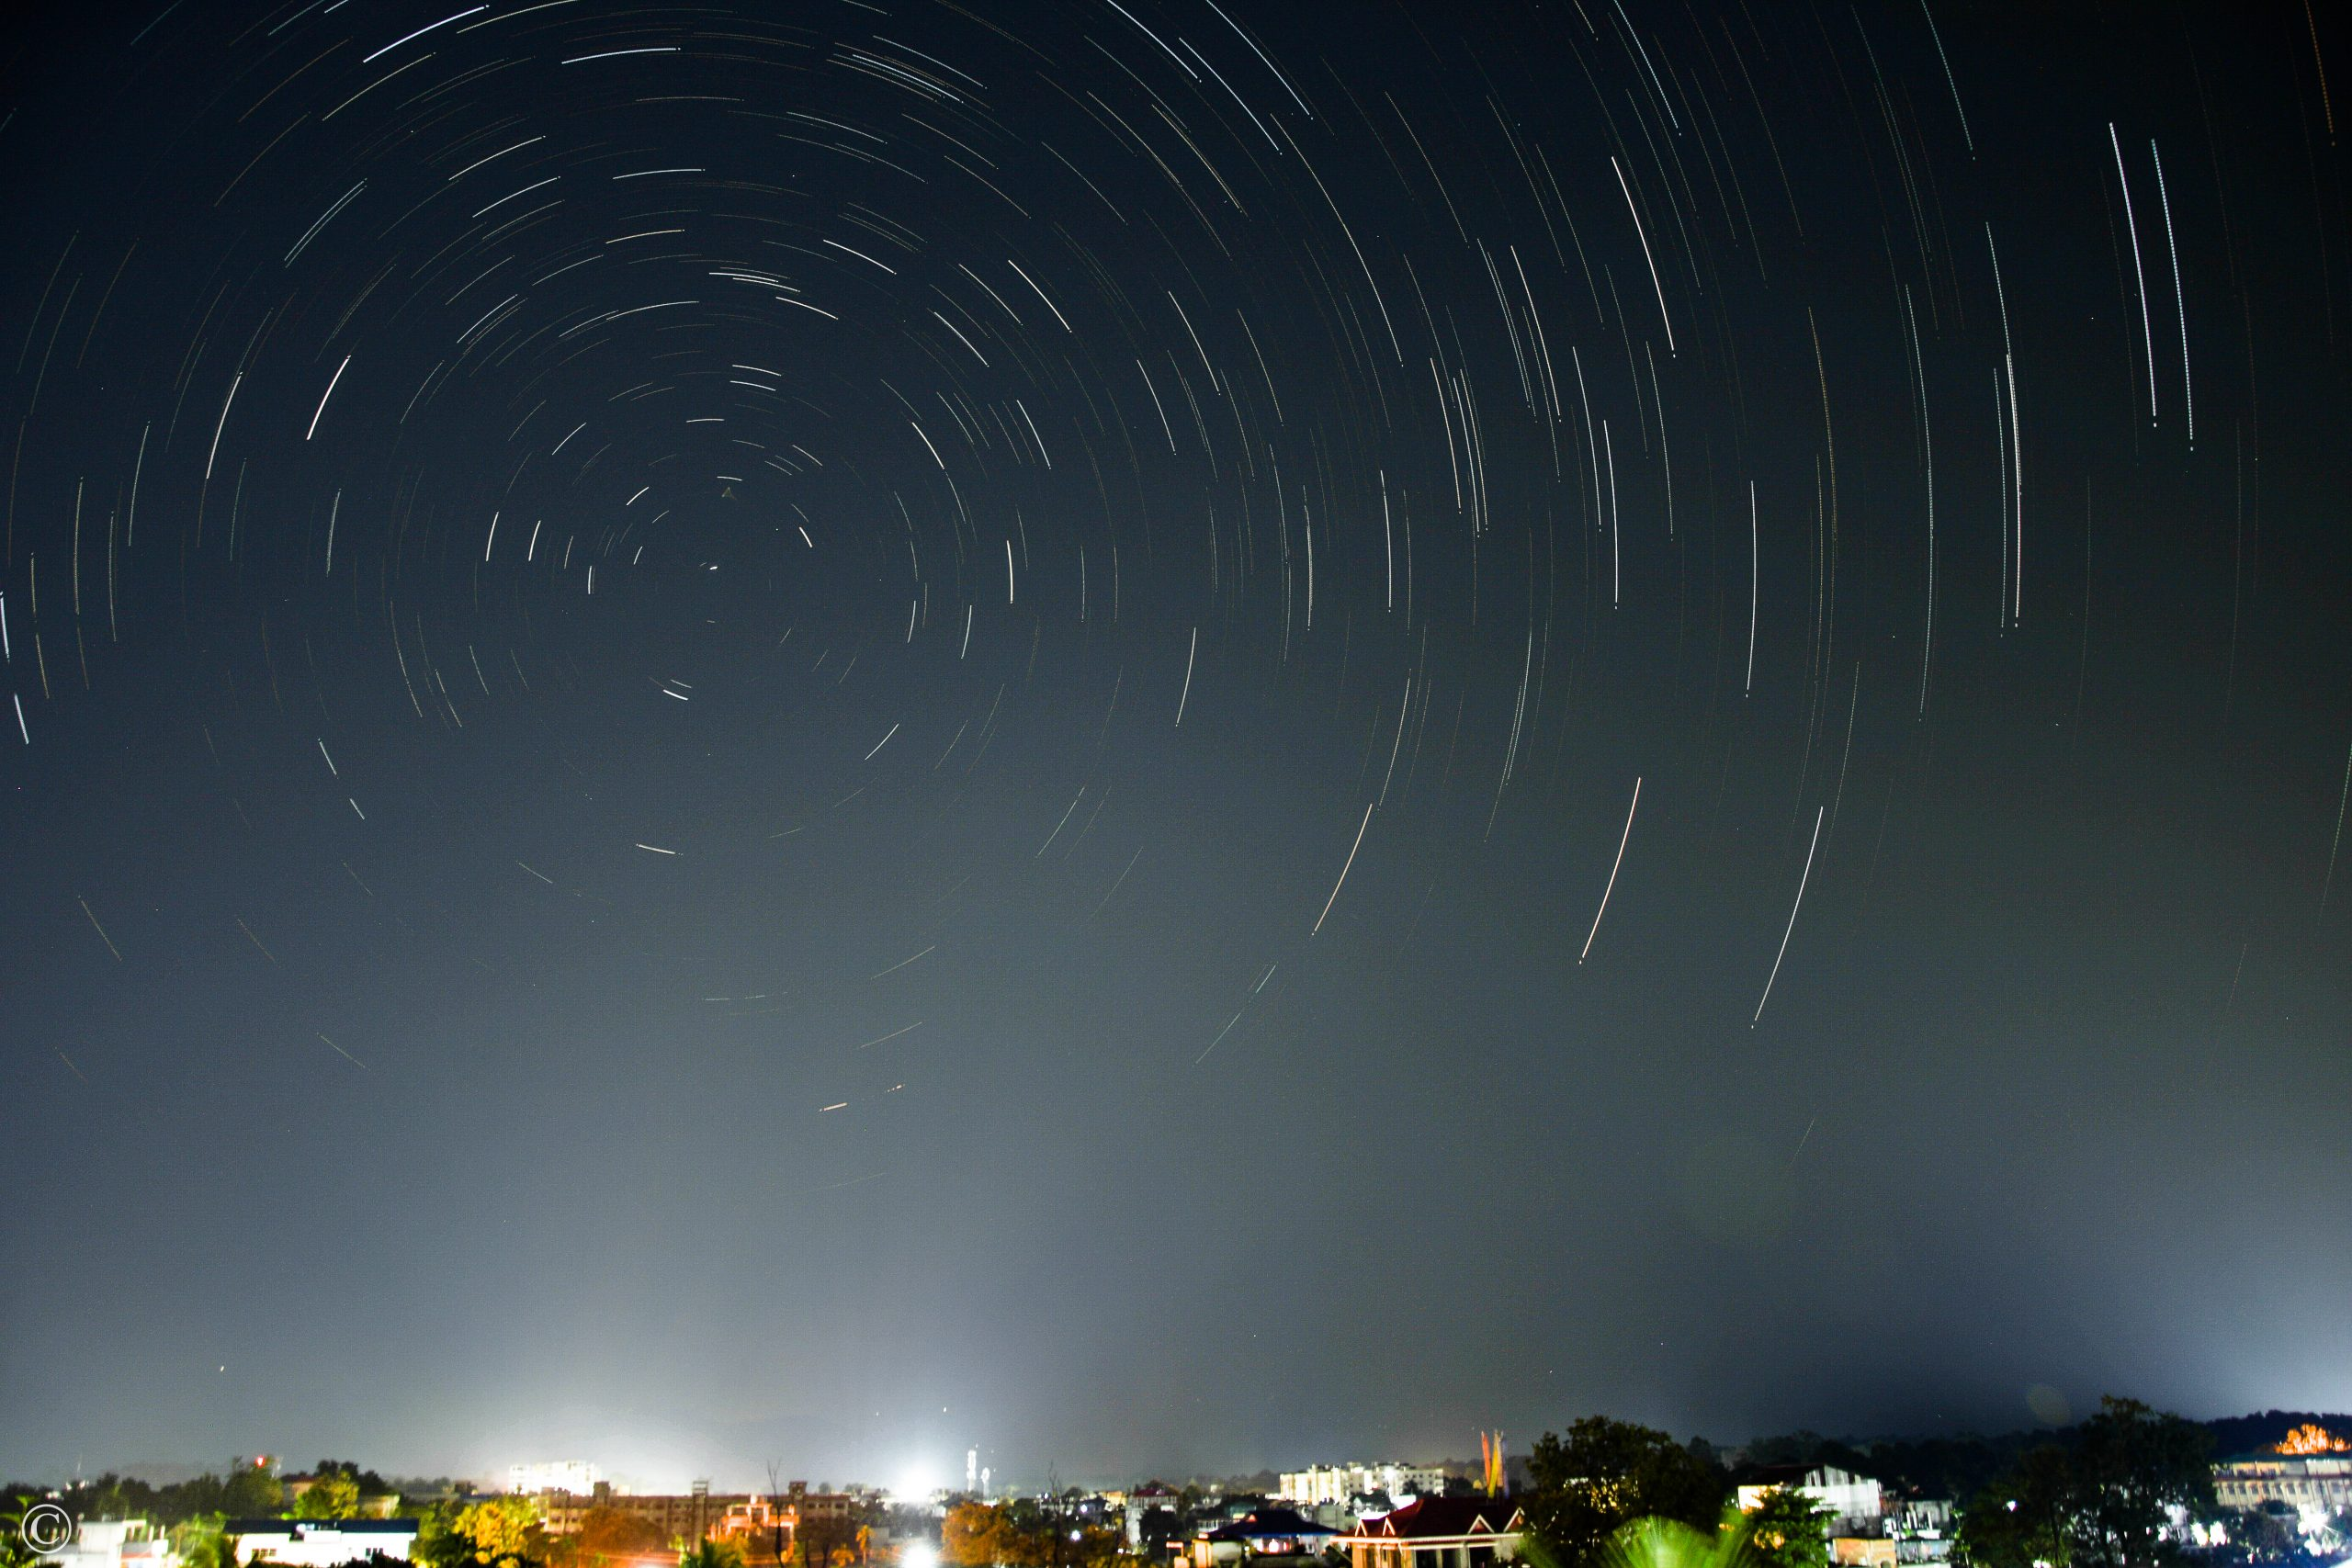 Star trails in the sky